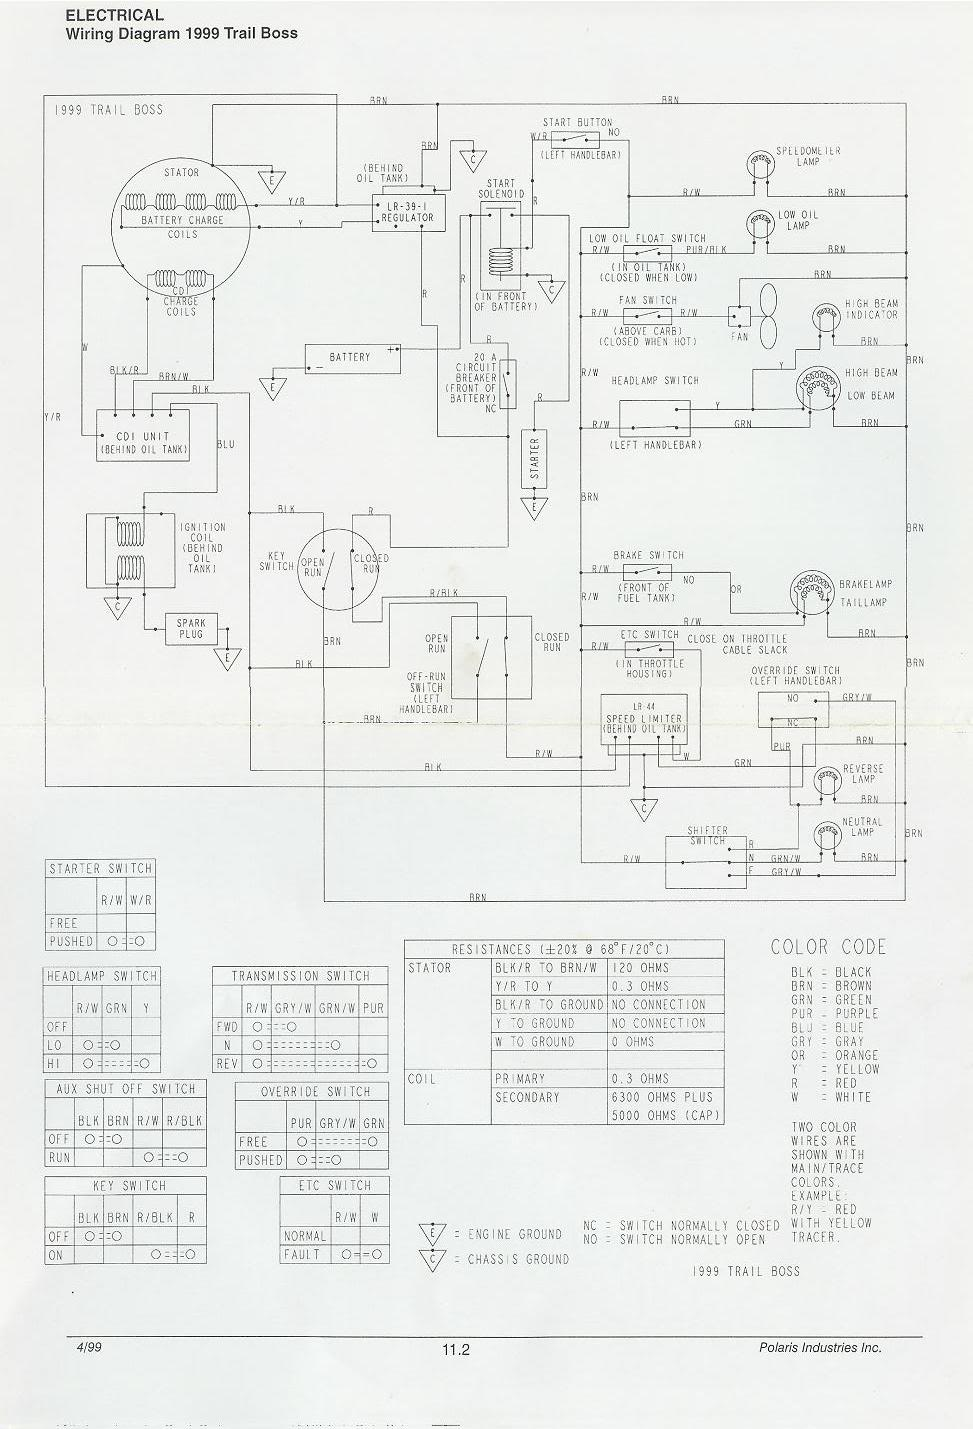 250 Wiring Diagram ther With Polaris Trail Boss 250 Wiring ... on 1999 polaris xpedition 425, 1999 polaris 250 2x4, 1999 polaris scrambler 400 4x4, 1999 polaris magnum, 1999 polaris xplorer 400 4x4,